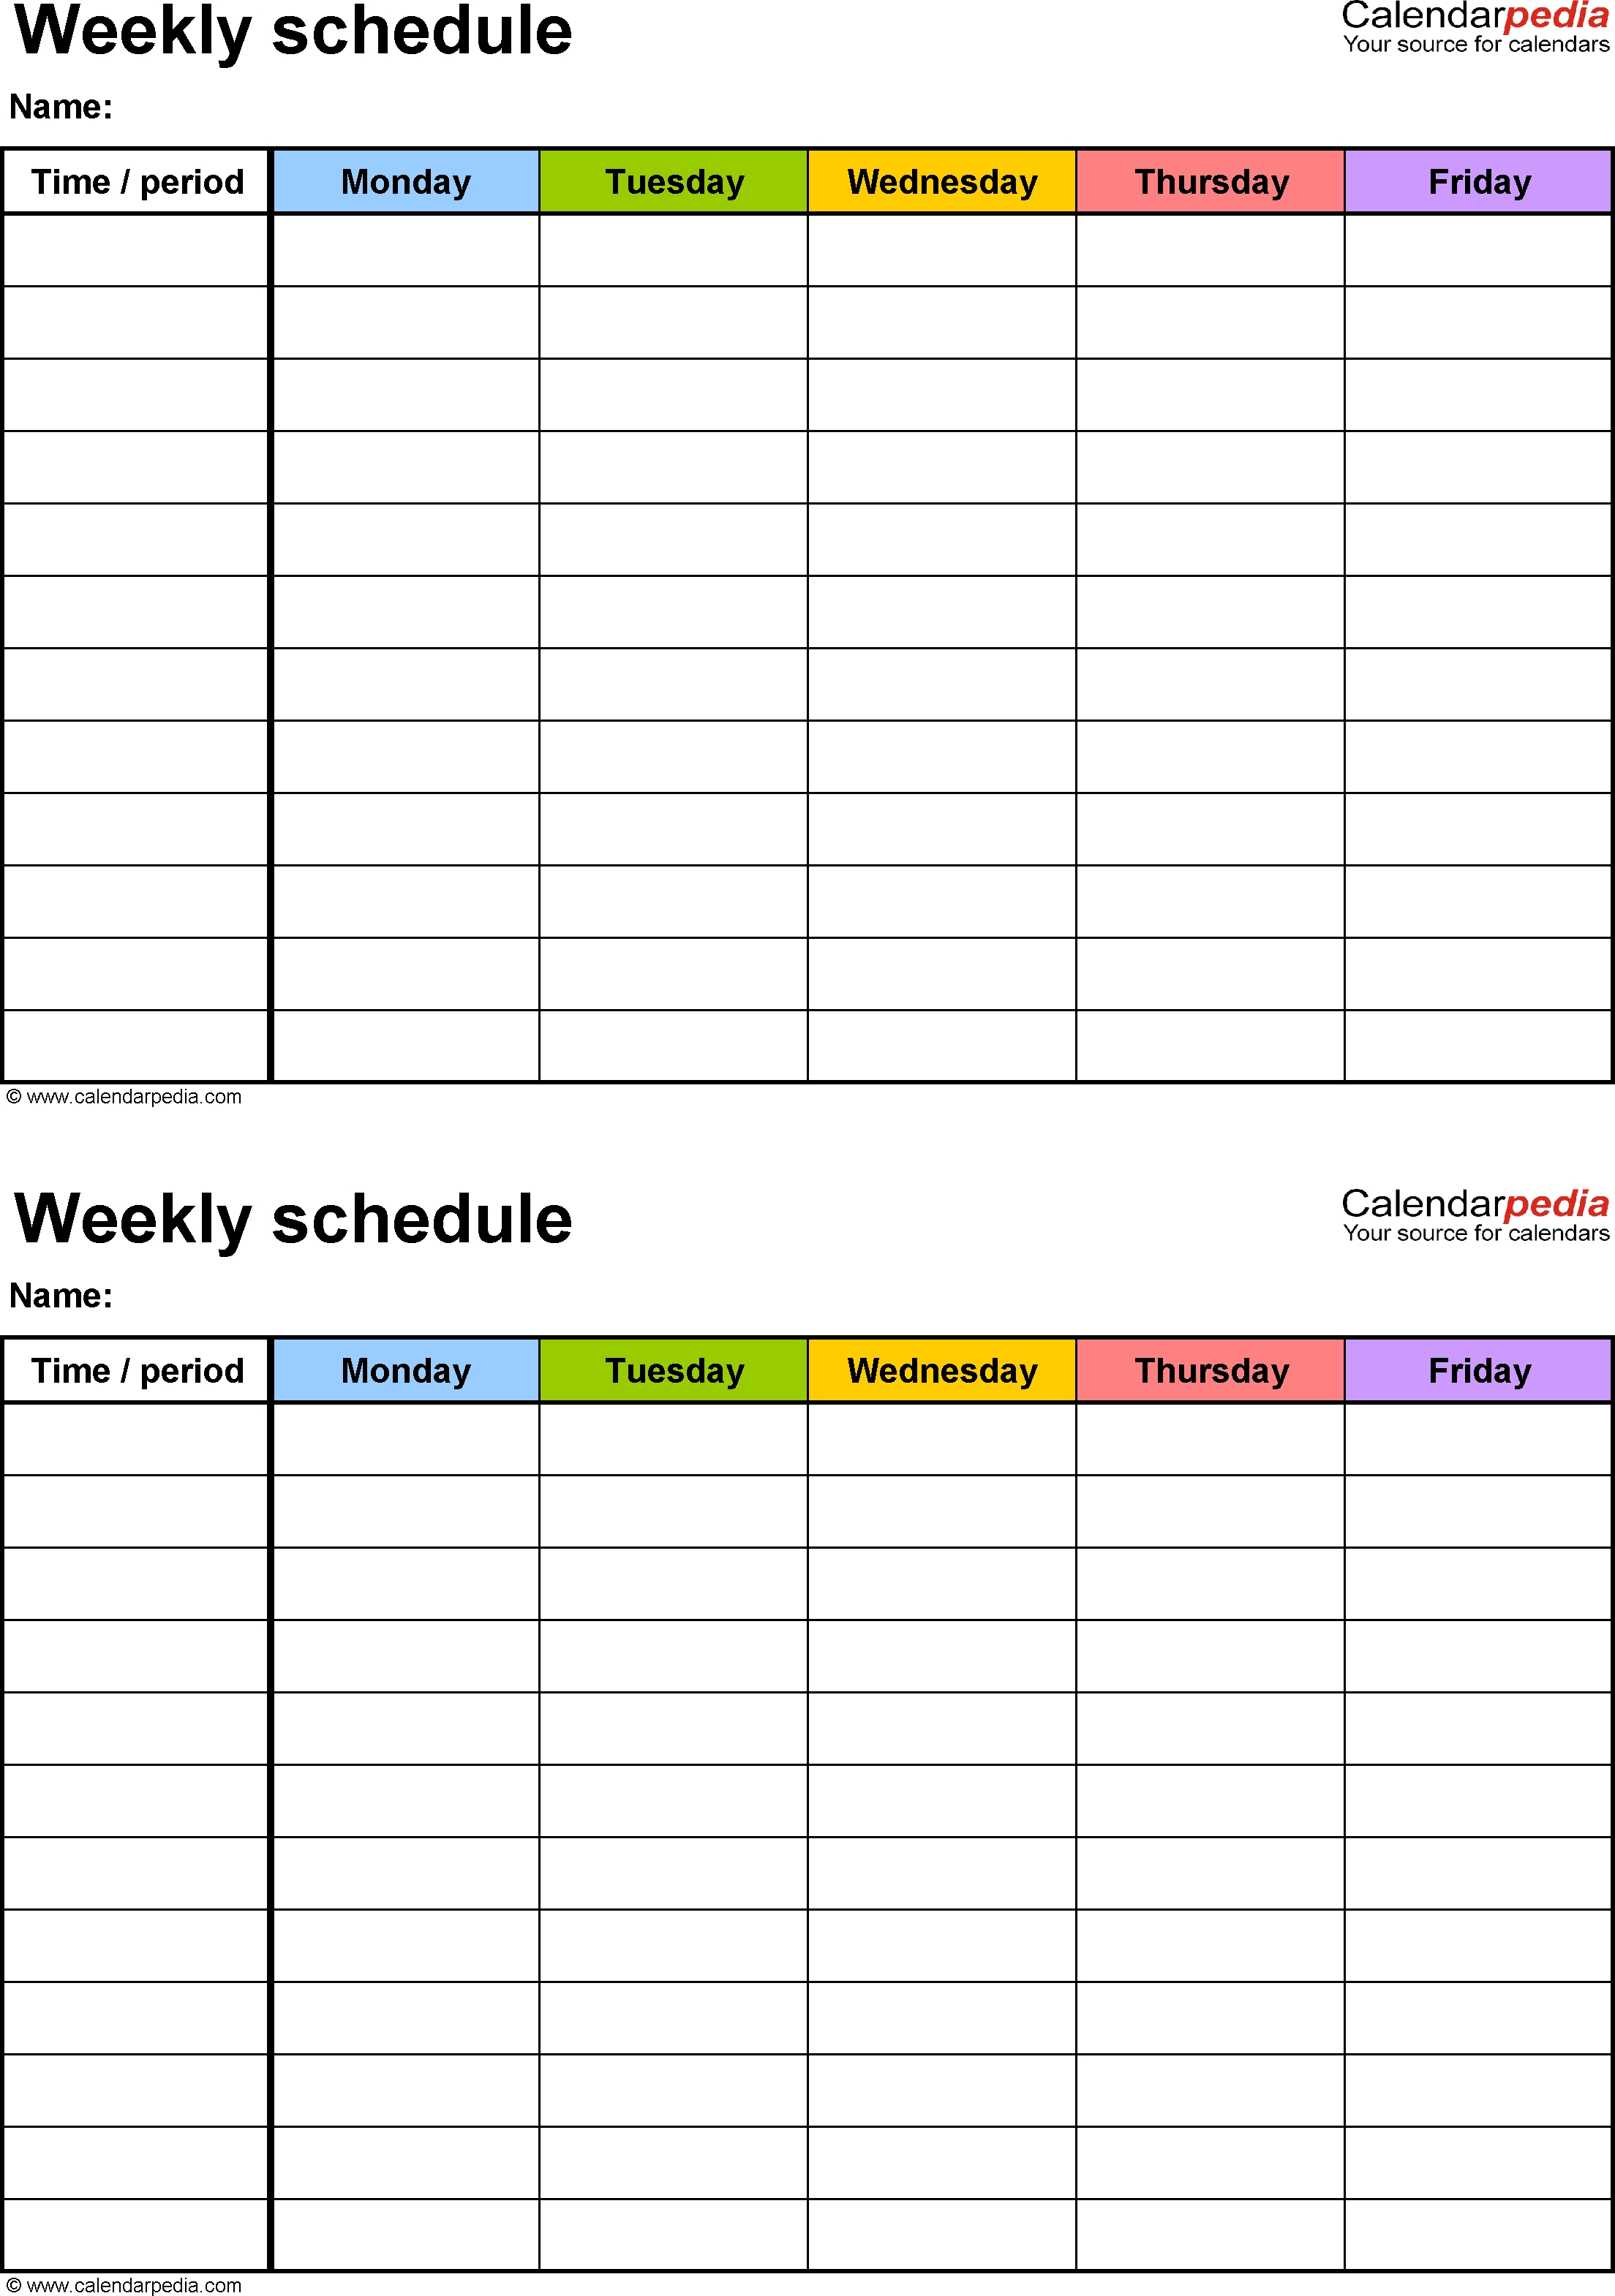 Free Weekly Schedule Templates For Word - 18 Templates for Free Printable Weekly Schedule Planner